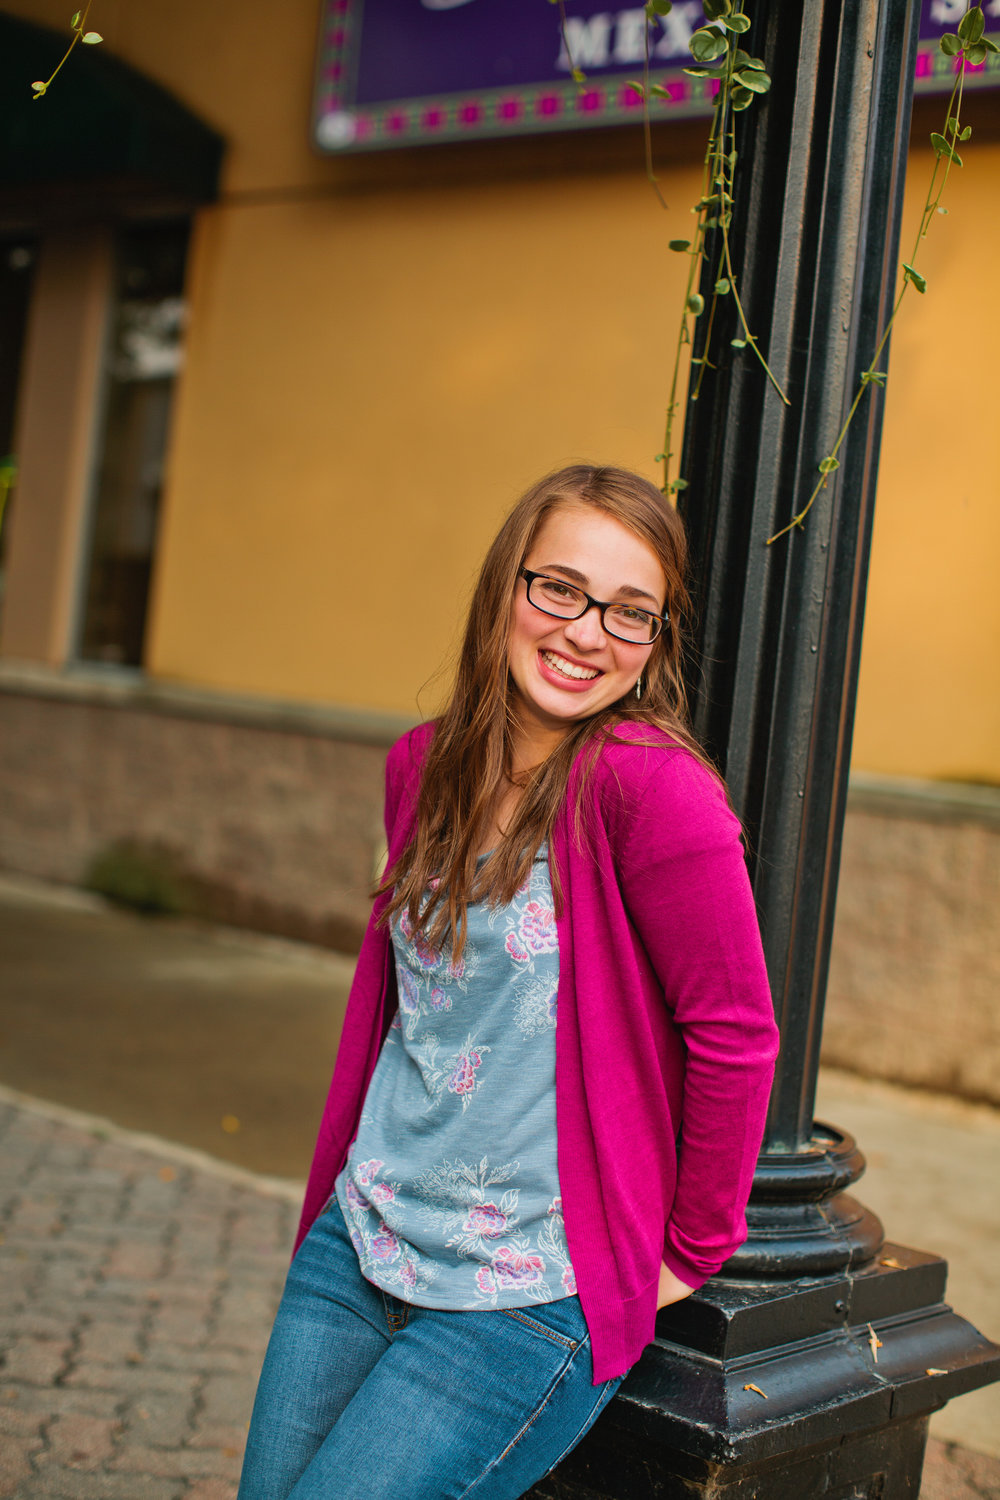 Des Moines Waterloo Cedar Falls senior photography natural candid professional